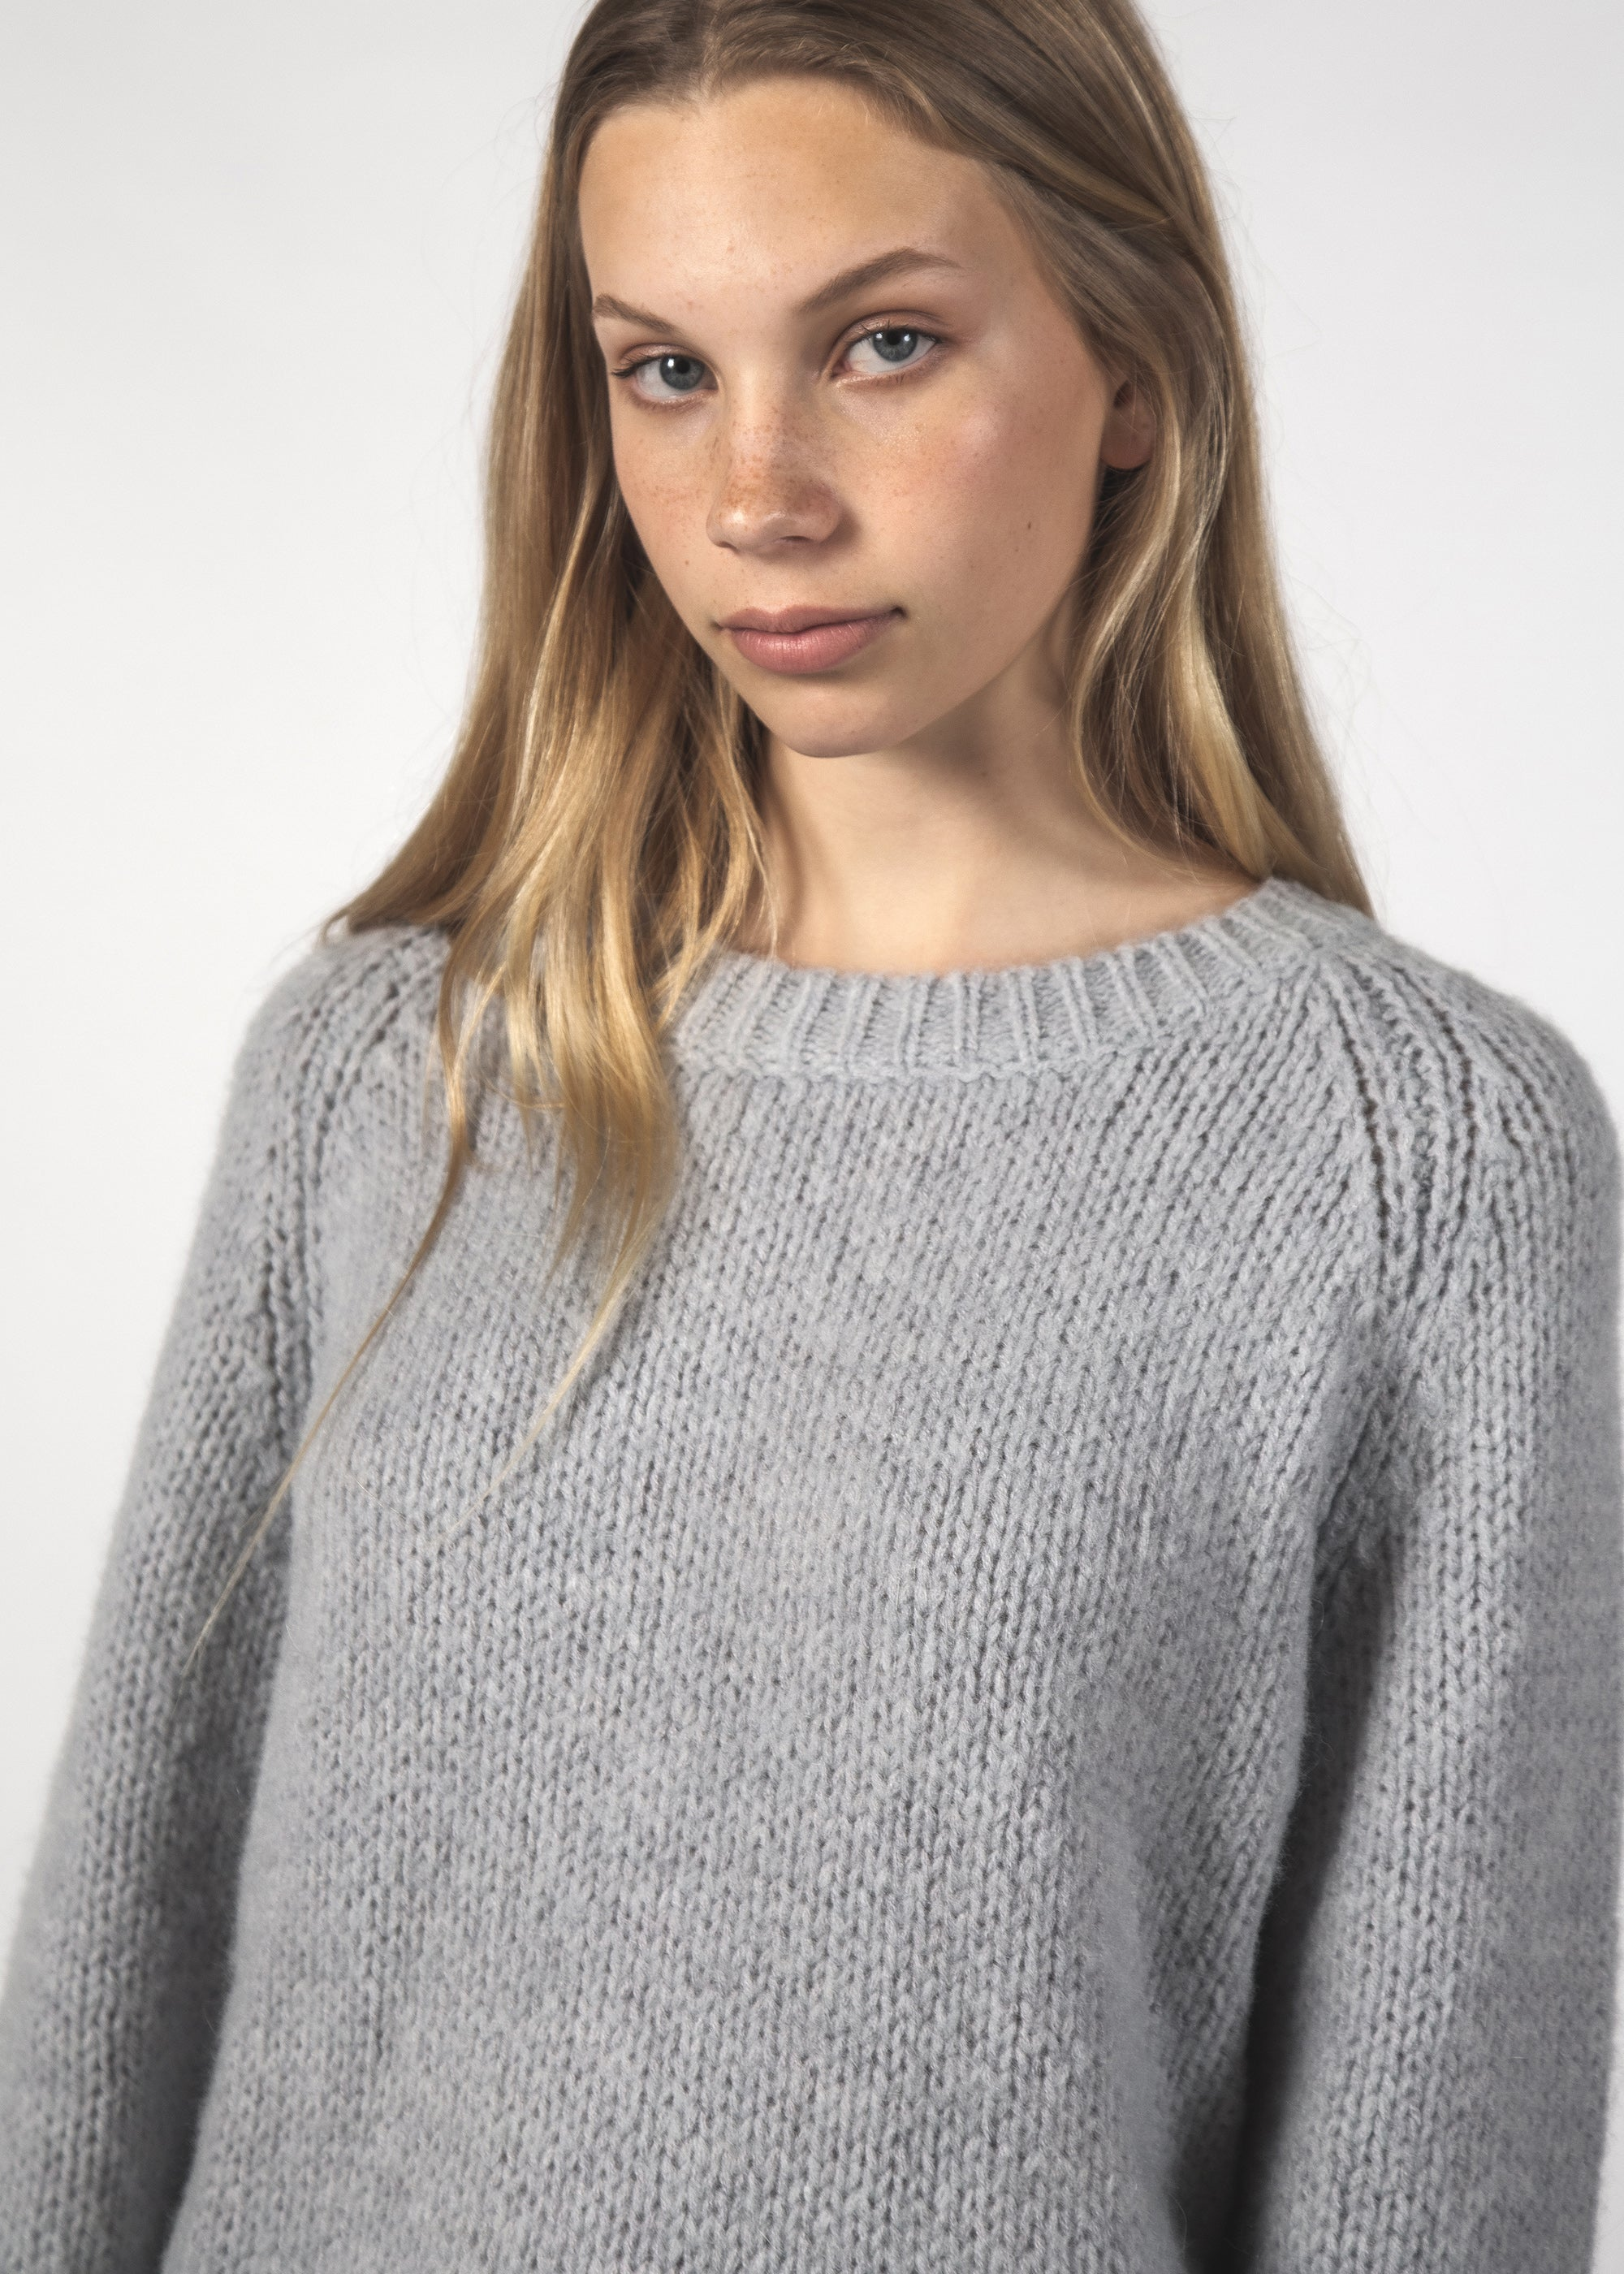 MILO JUMPER - SOFT GREY